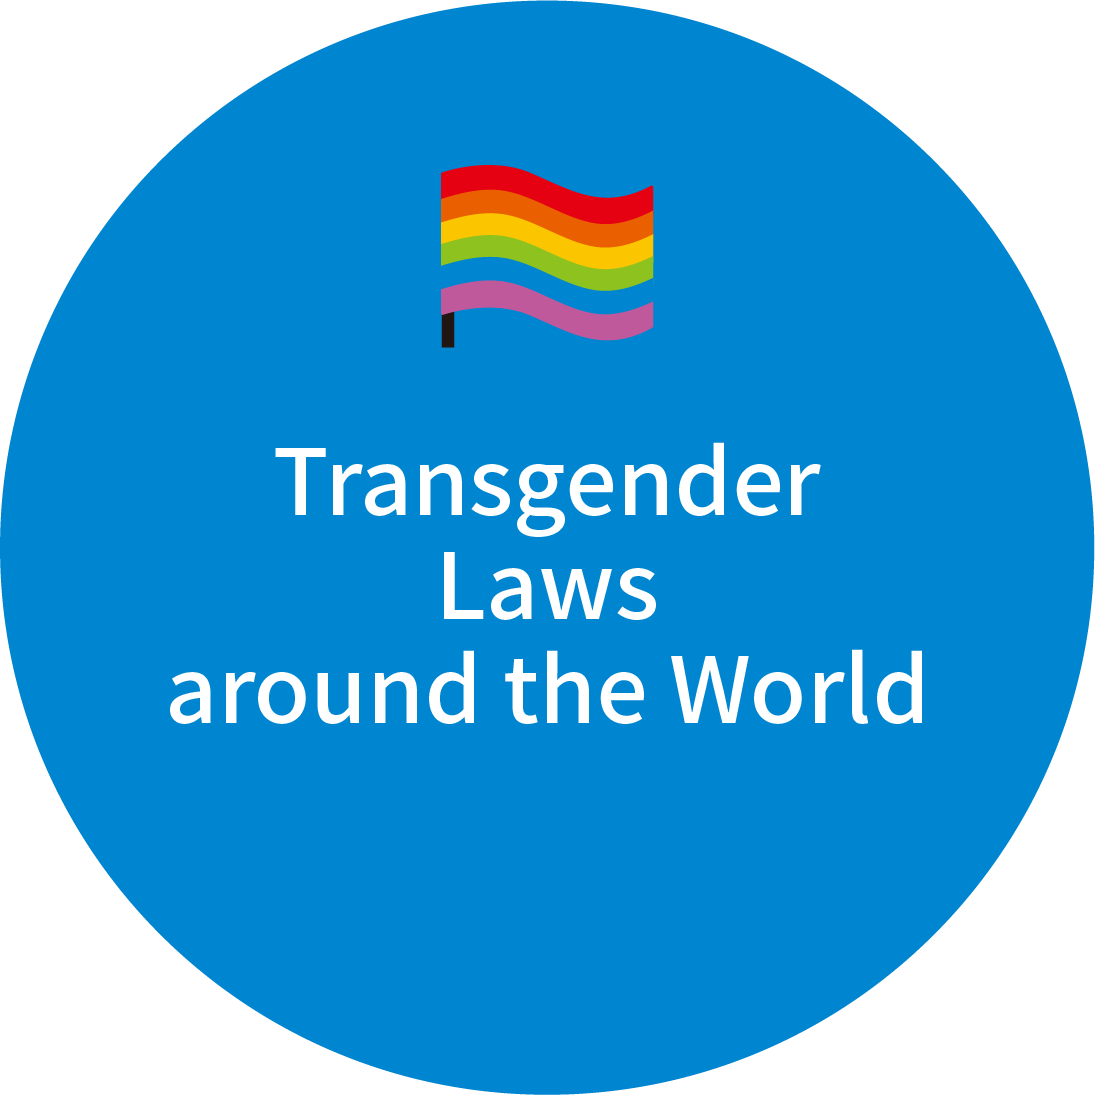 Transgender Laws around the World